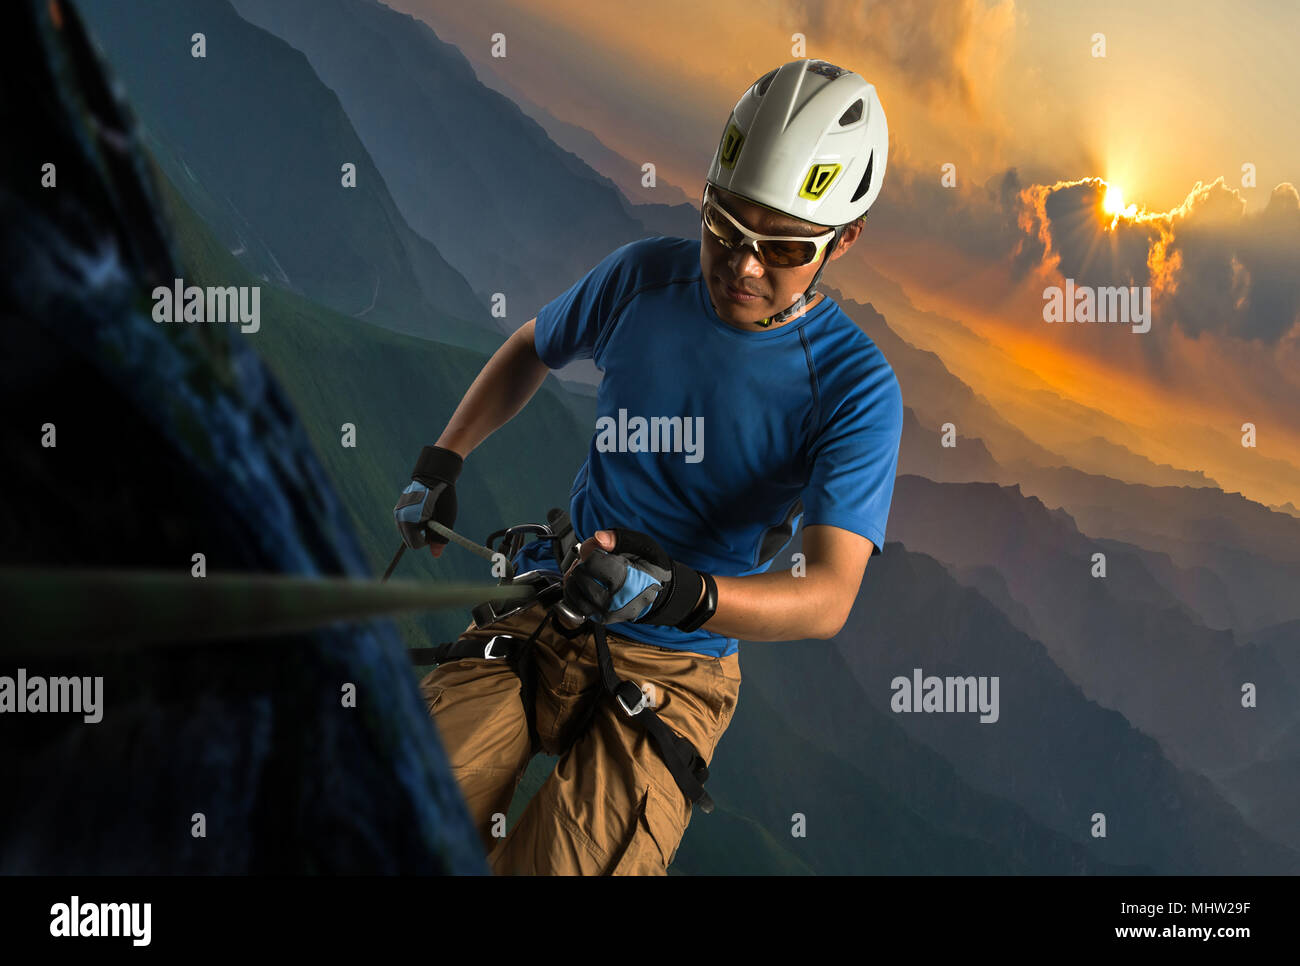 Middle-aged man climbing over a cliff - Stock Image